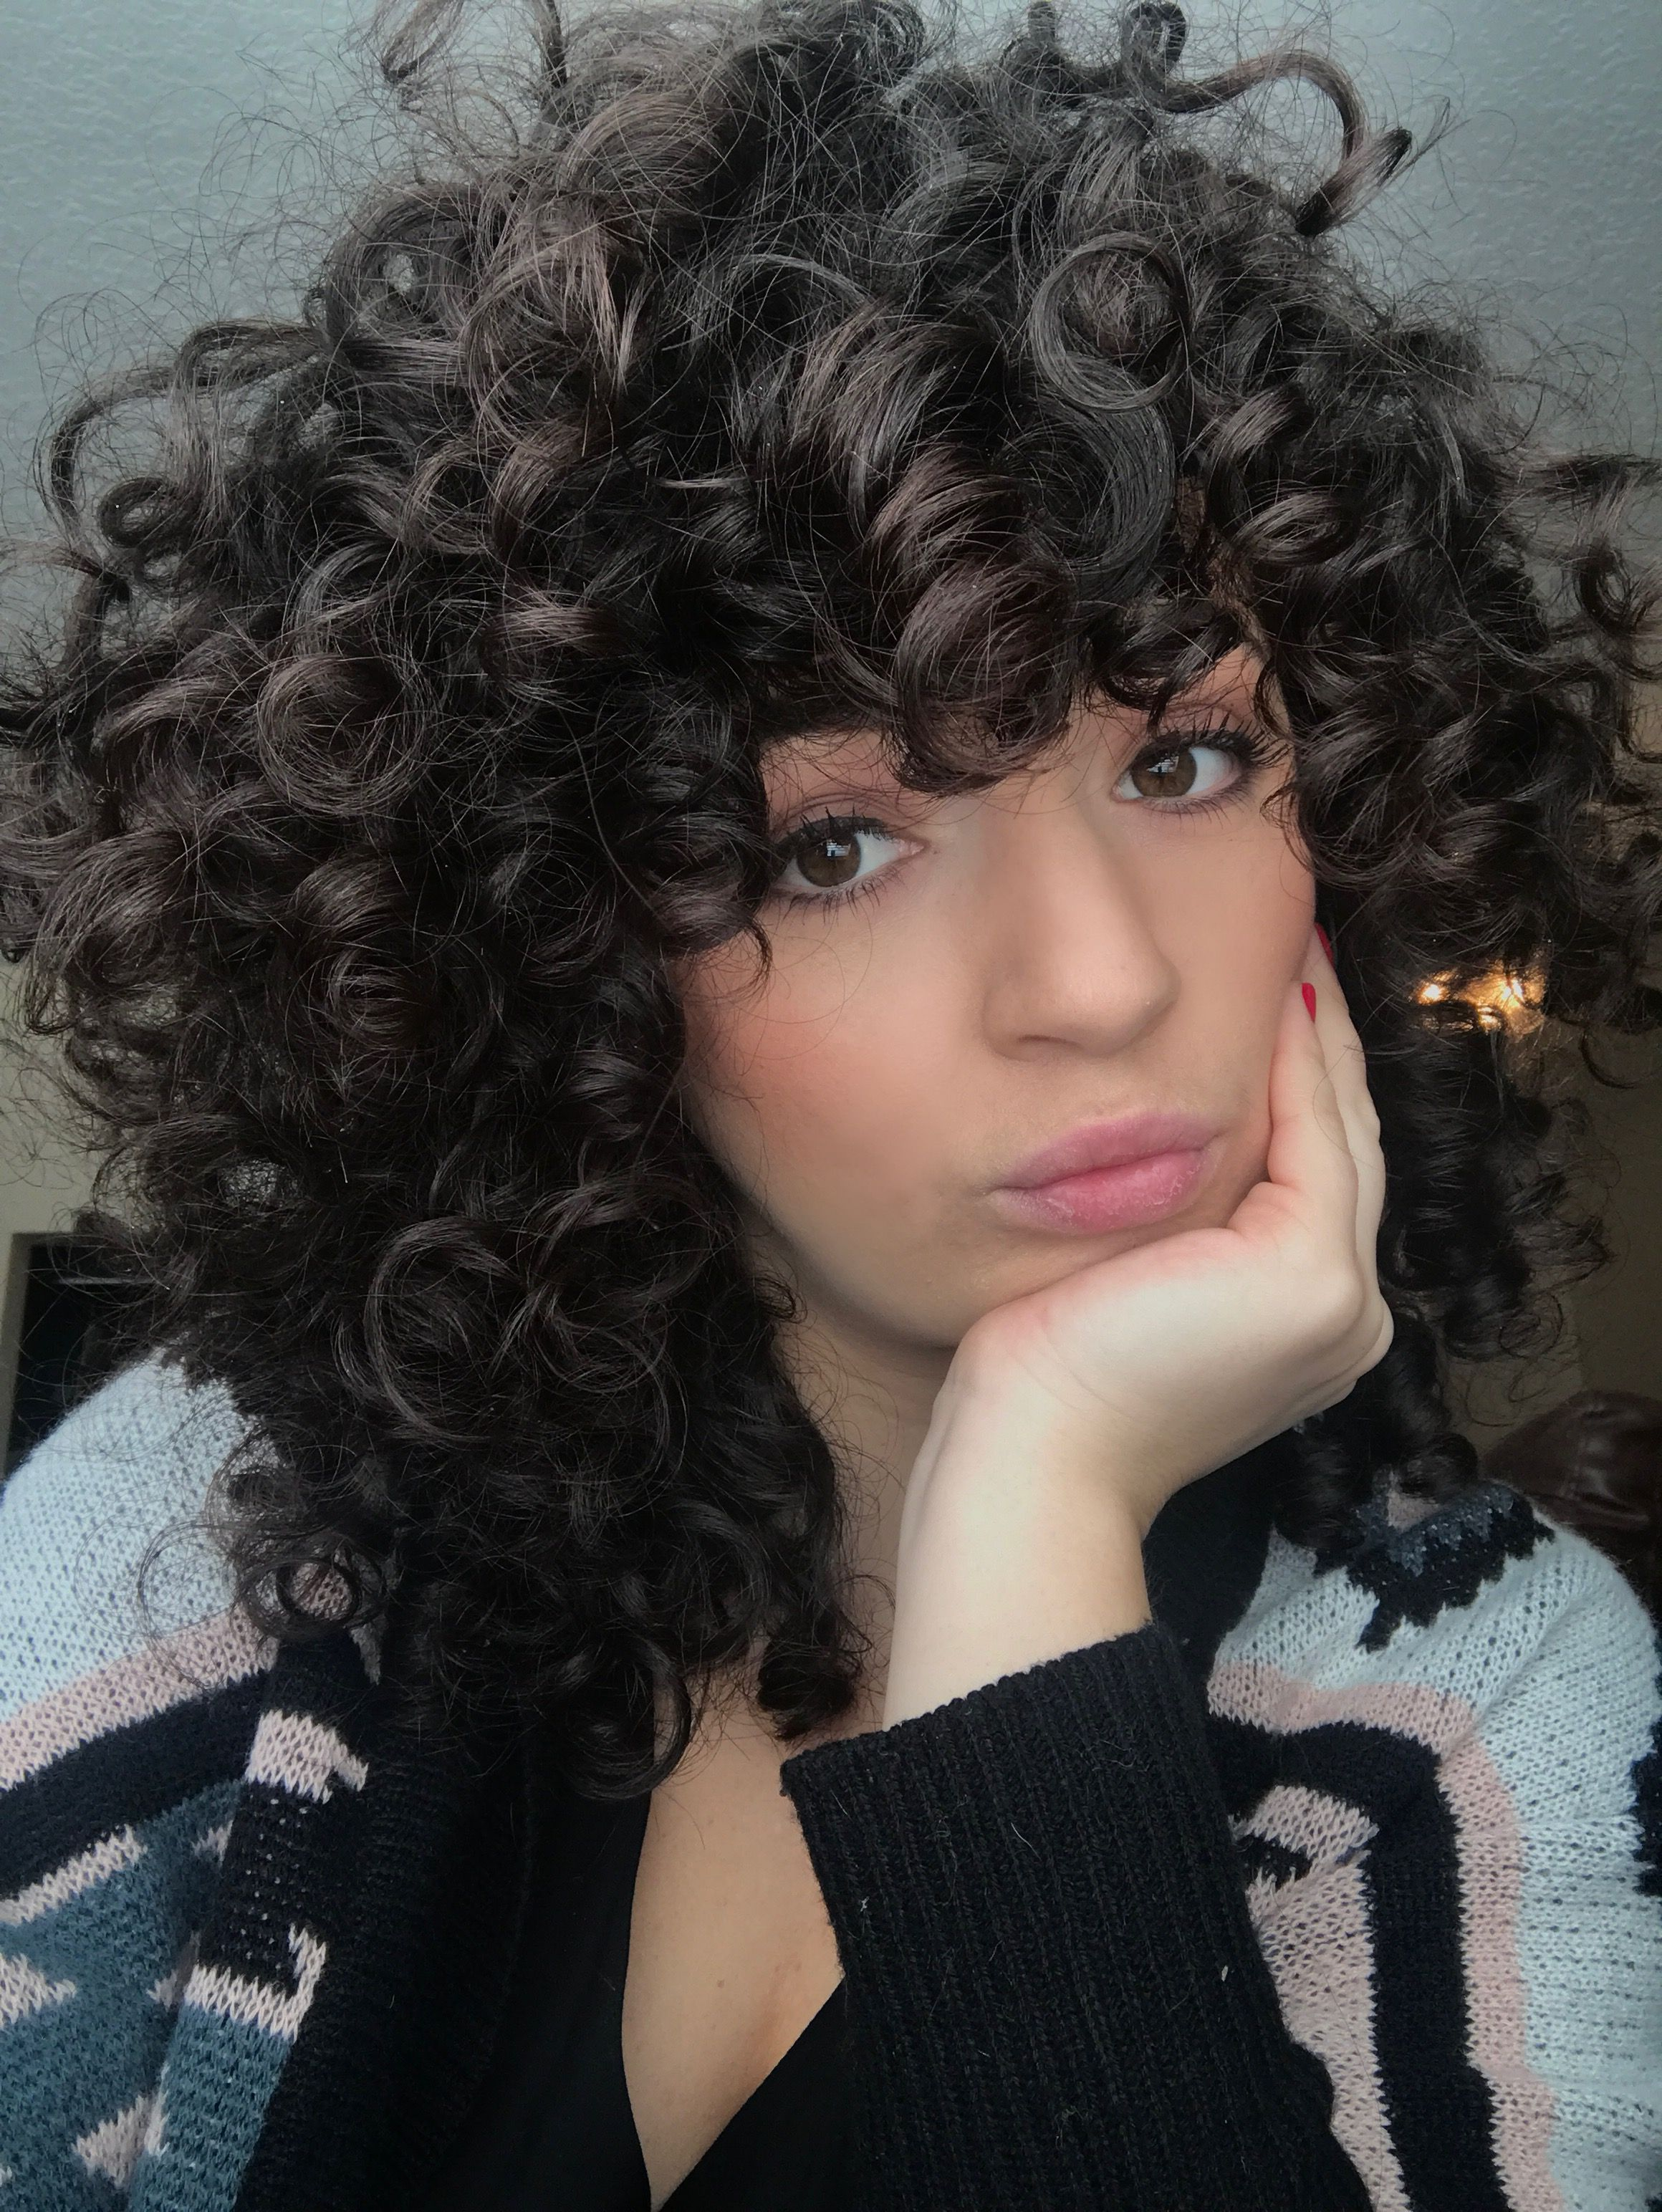 Uncategorized short gray african american hairstyles 4 tight curls short hairstyle 2013 - 3b Curls Shaggy Cut Curly Hair Ig Littlemisssaly